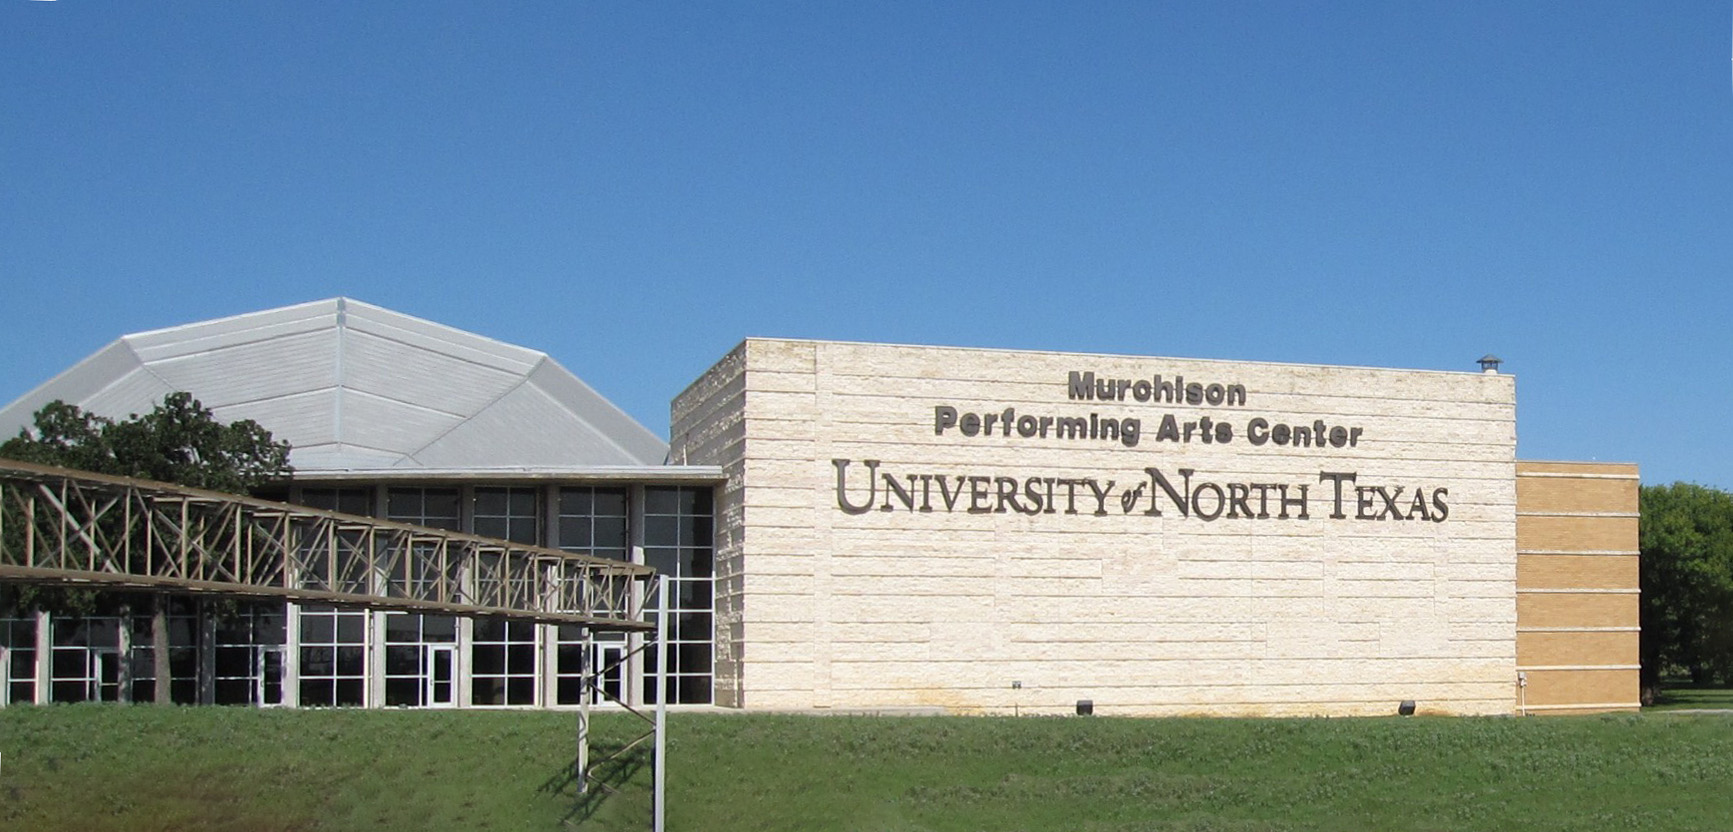 university of north texas Human resources serves almost 10,000 employees at all locations we're here to help job applicants, plus faculty, staff and certain students employed by a major university.